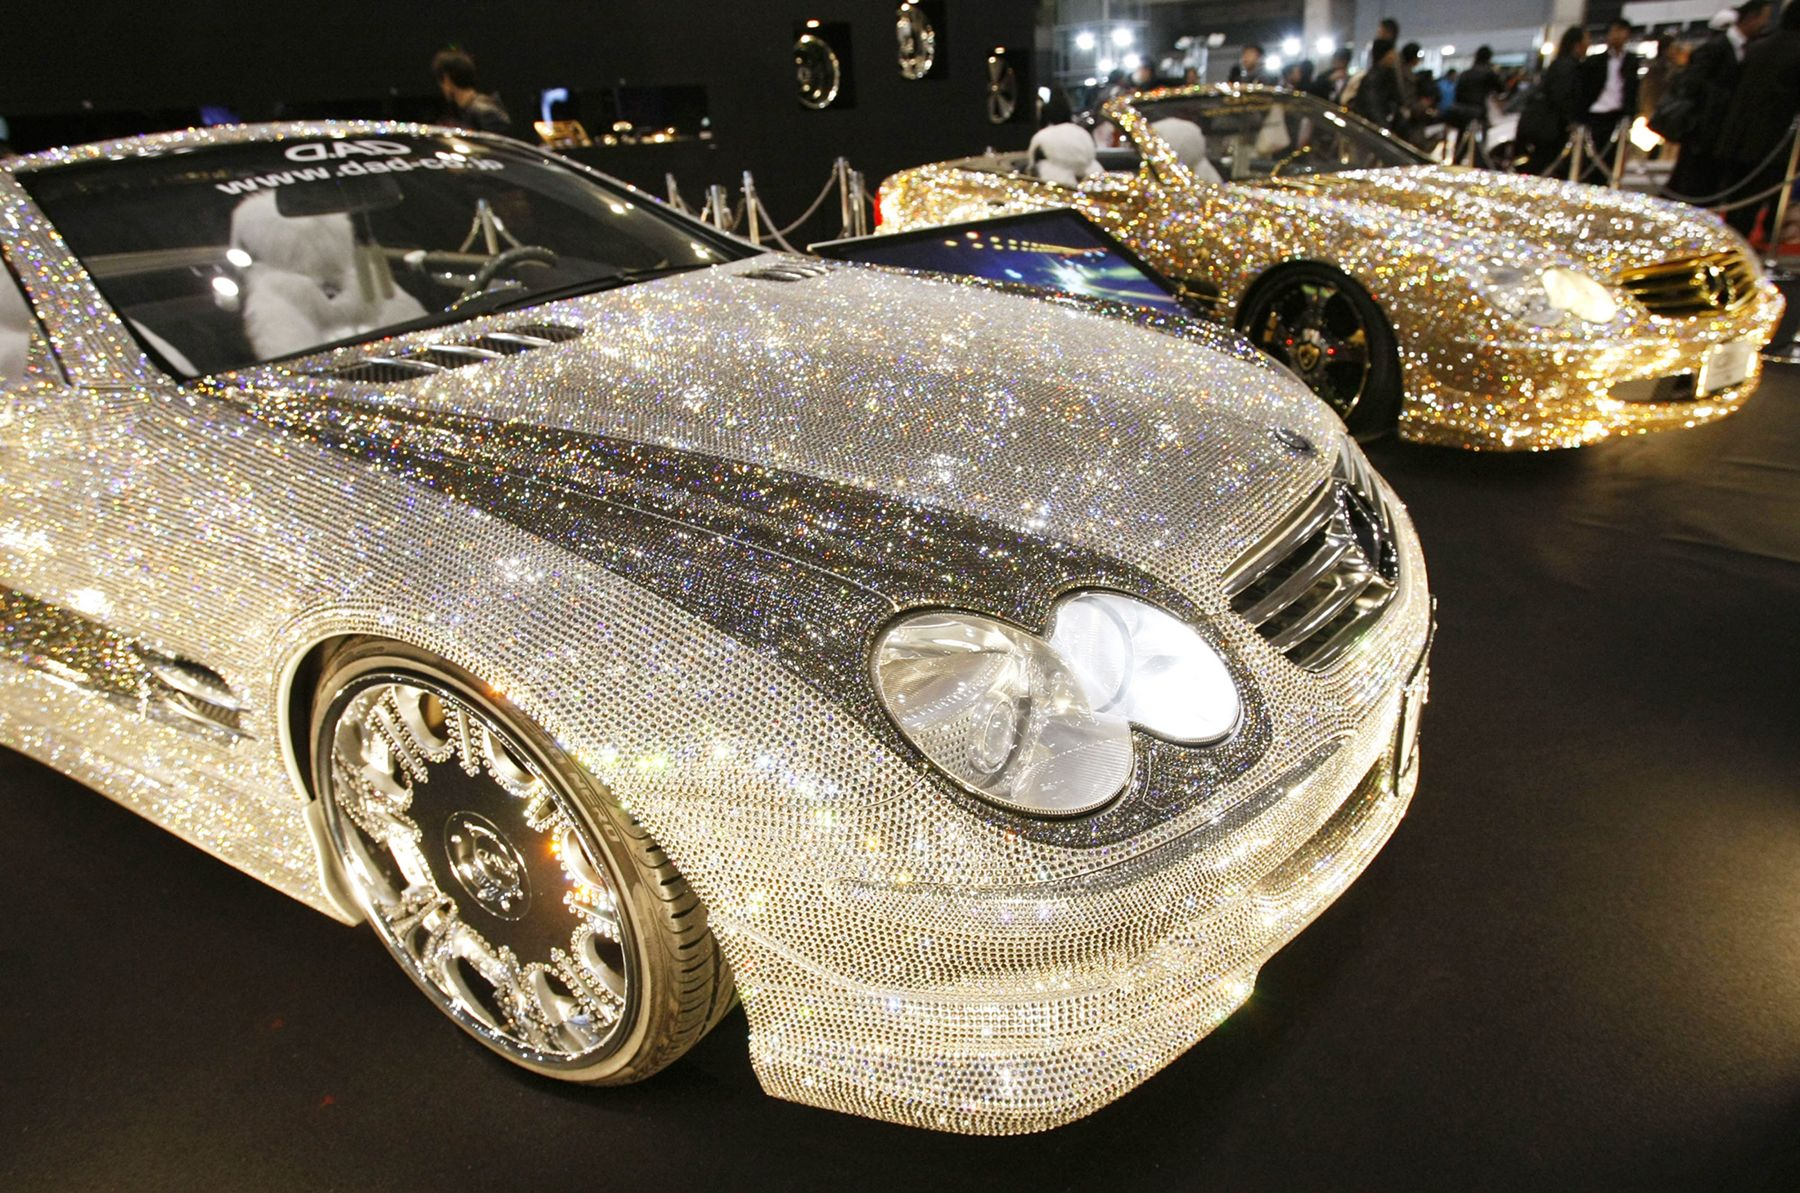 most expensive car in the world owned by prince and business man, Alwaleed bin Talal,  source